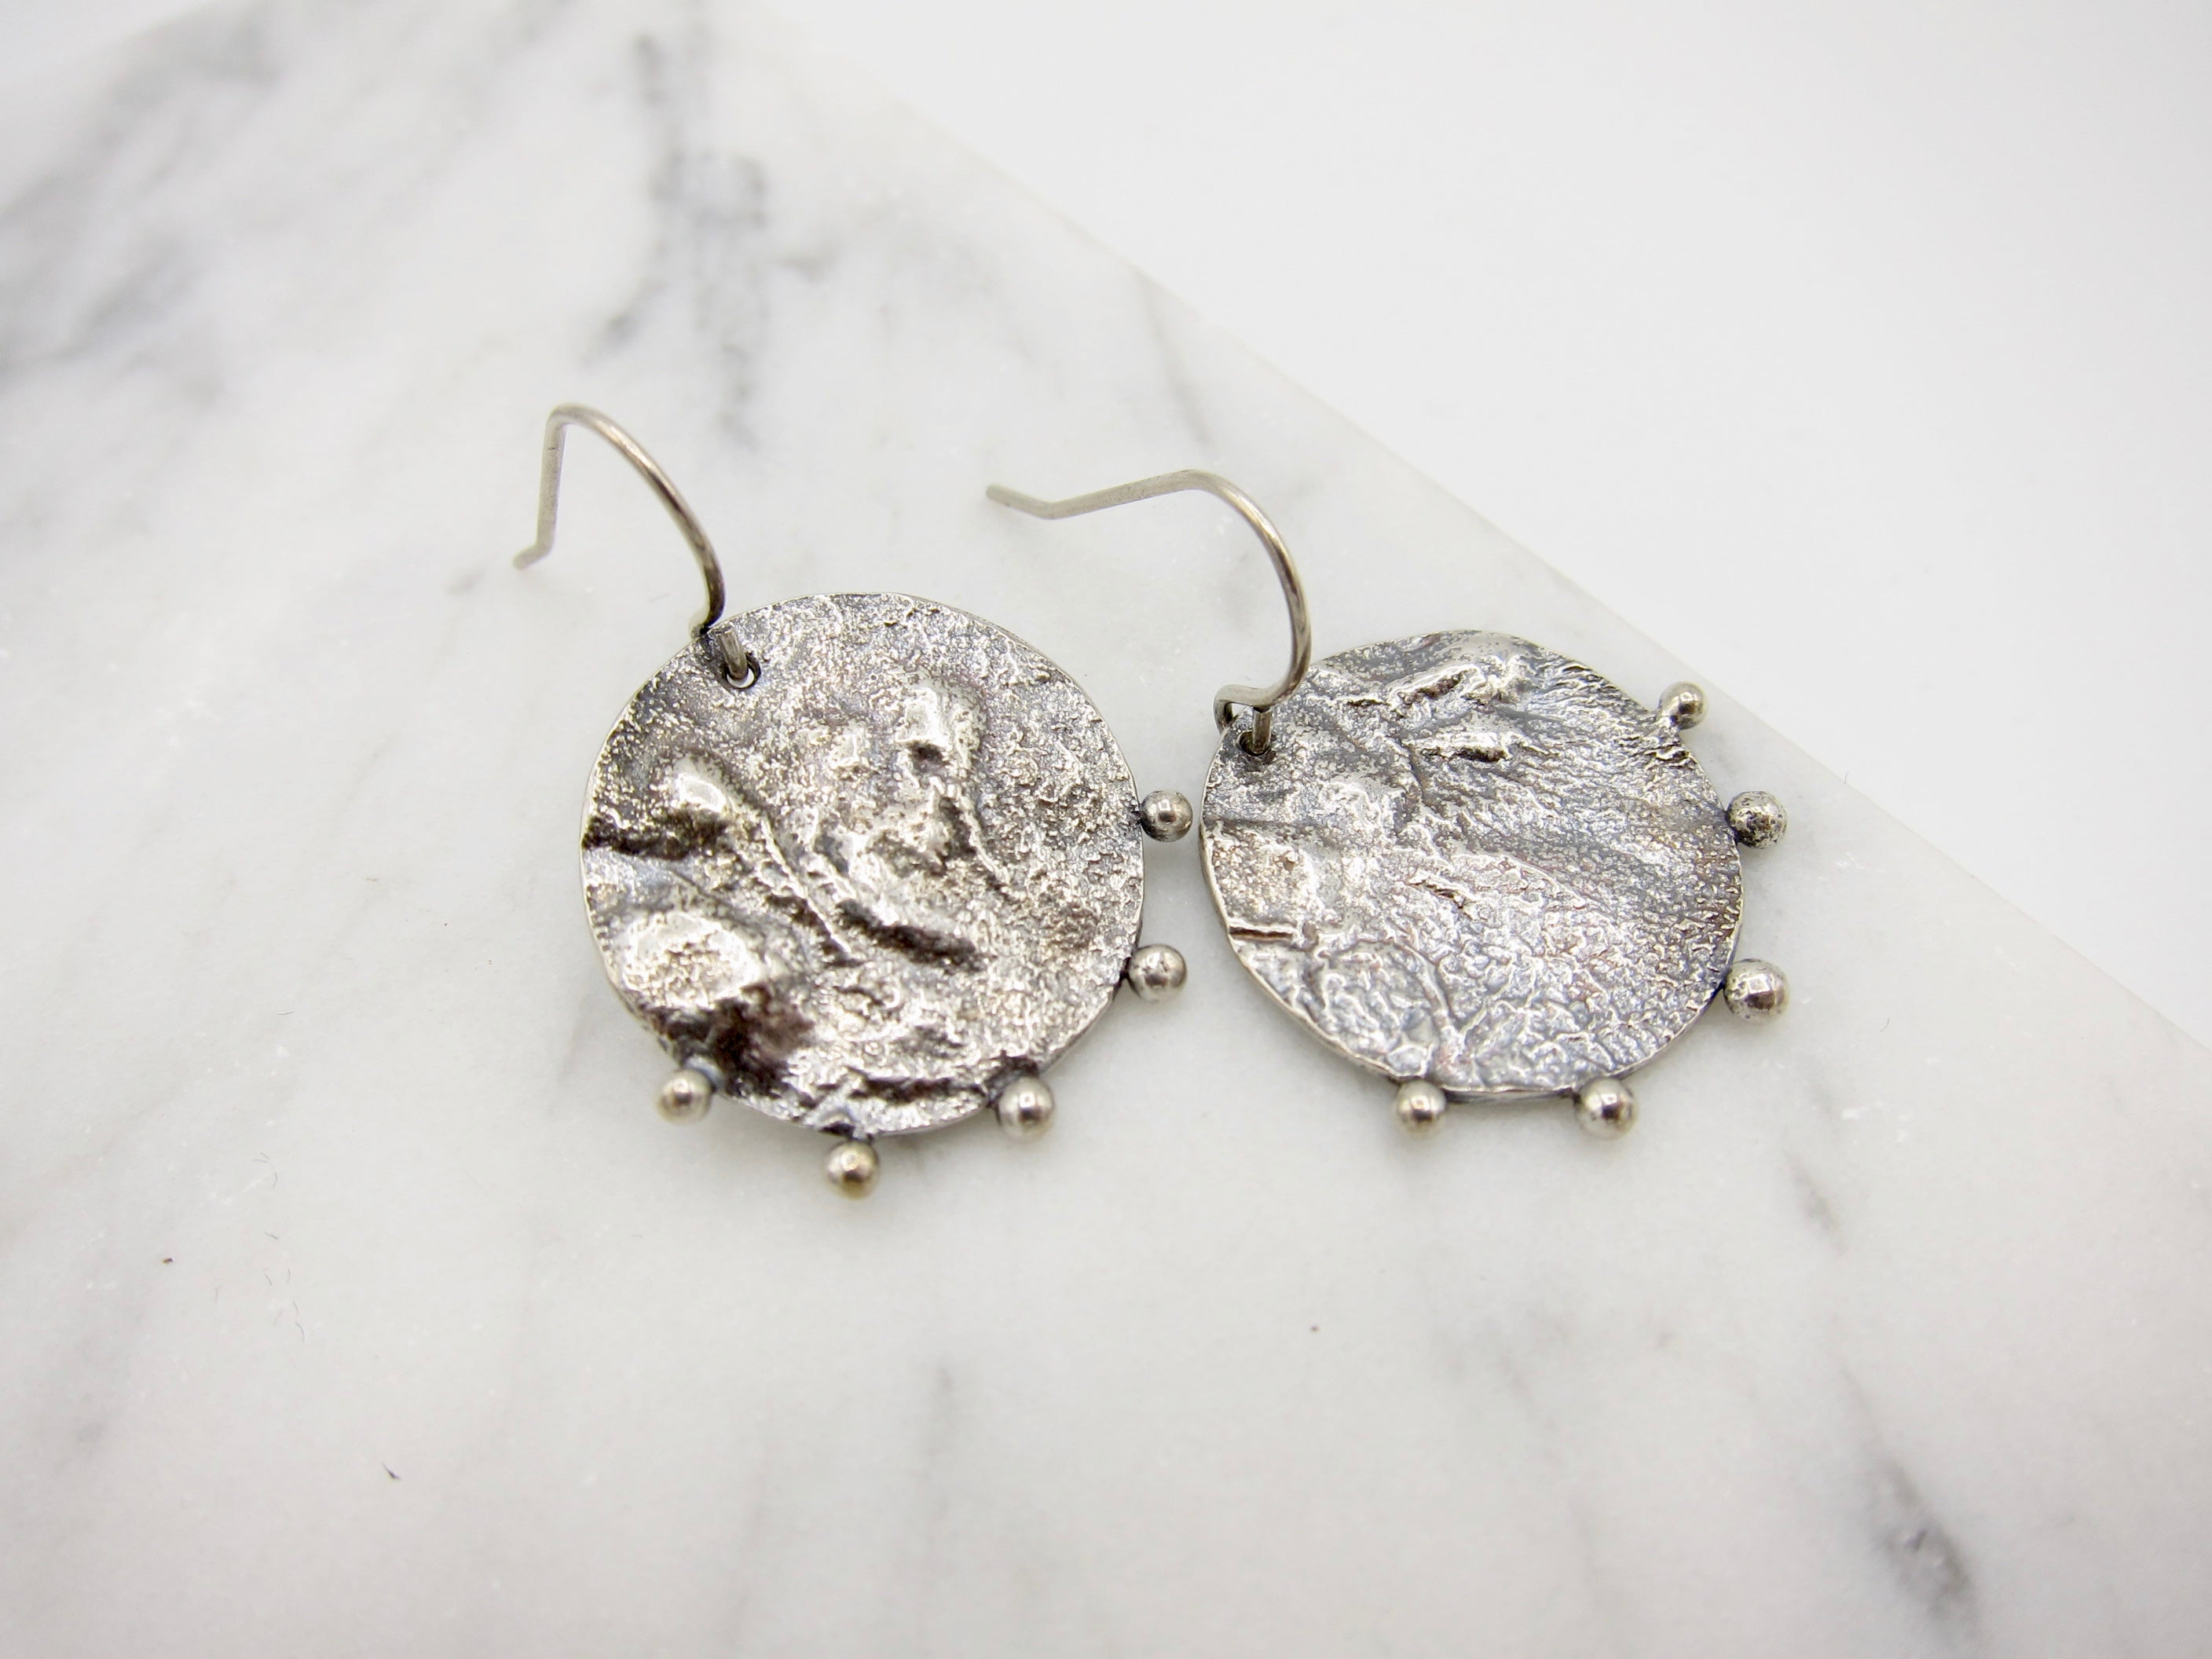 Reticulated Sterling Silver Earrings